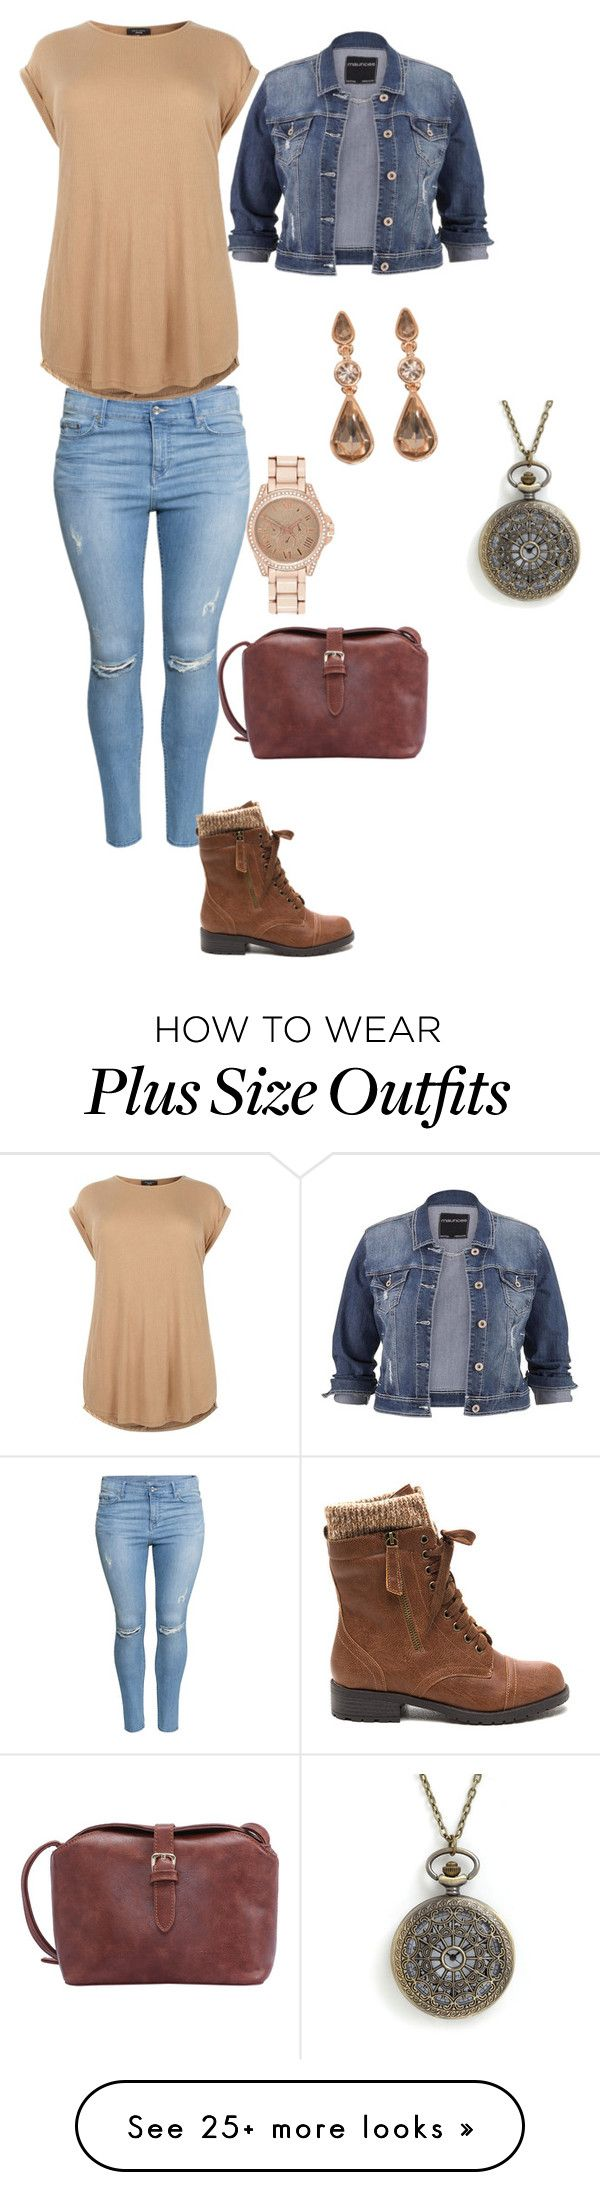 """""""diva causal"""" by patricia20306 on Polyvore featuring H&M, maurices, River Island, Givenchy and plus size clothing"""